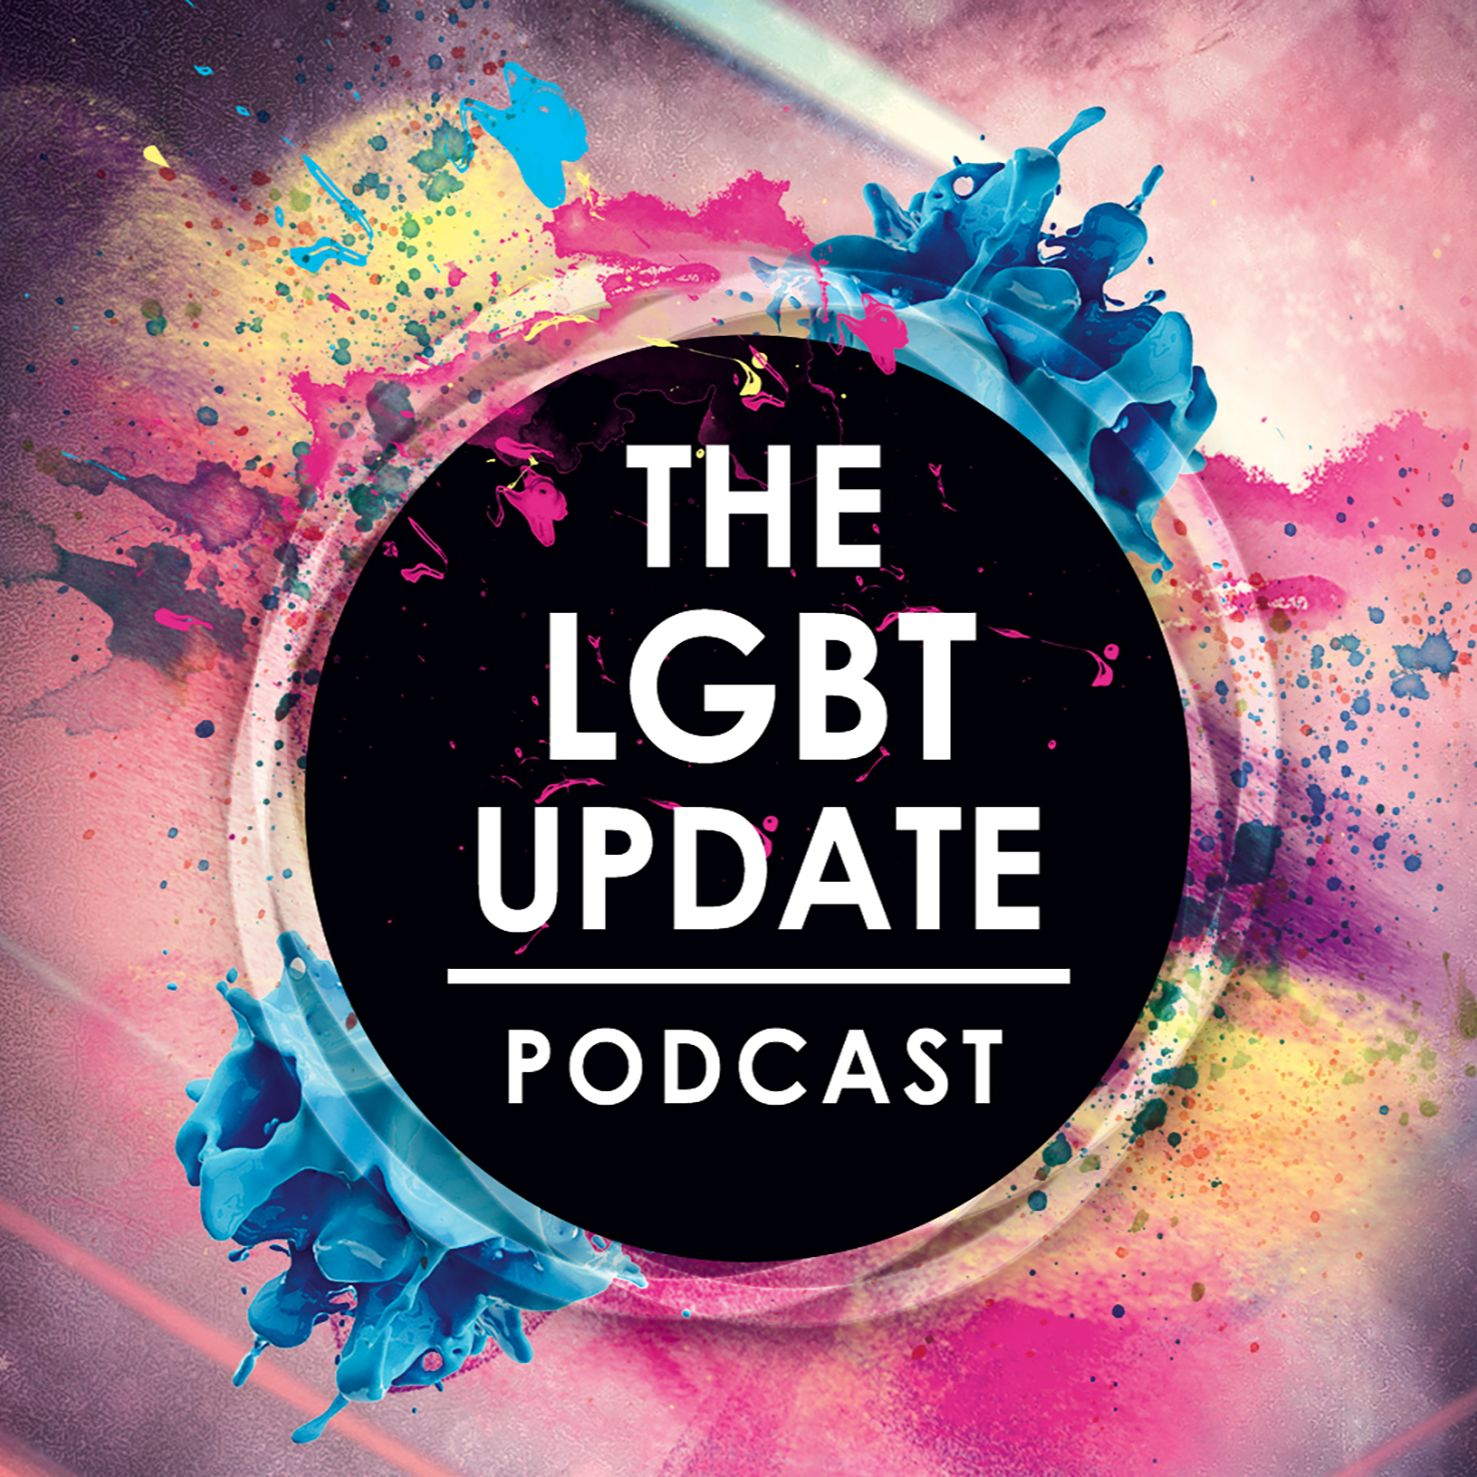 THE LGBT UPDATE PODCAST